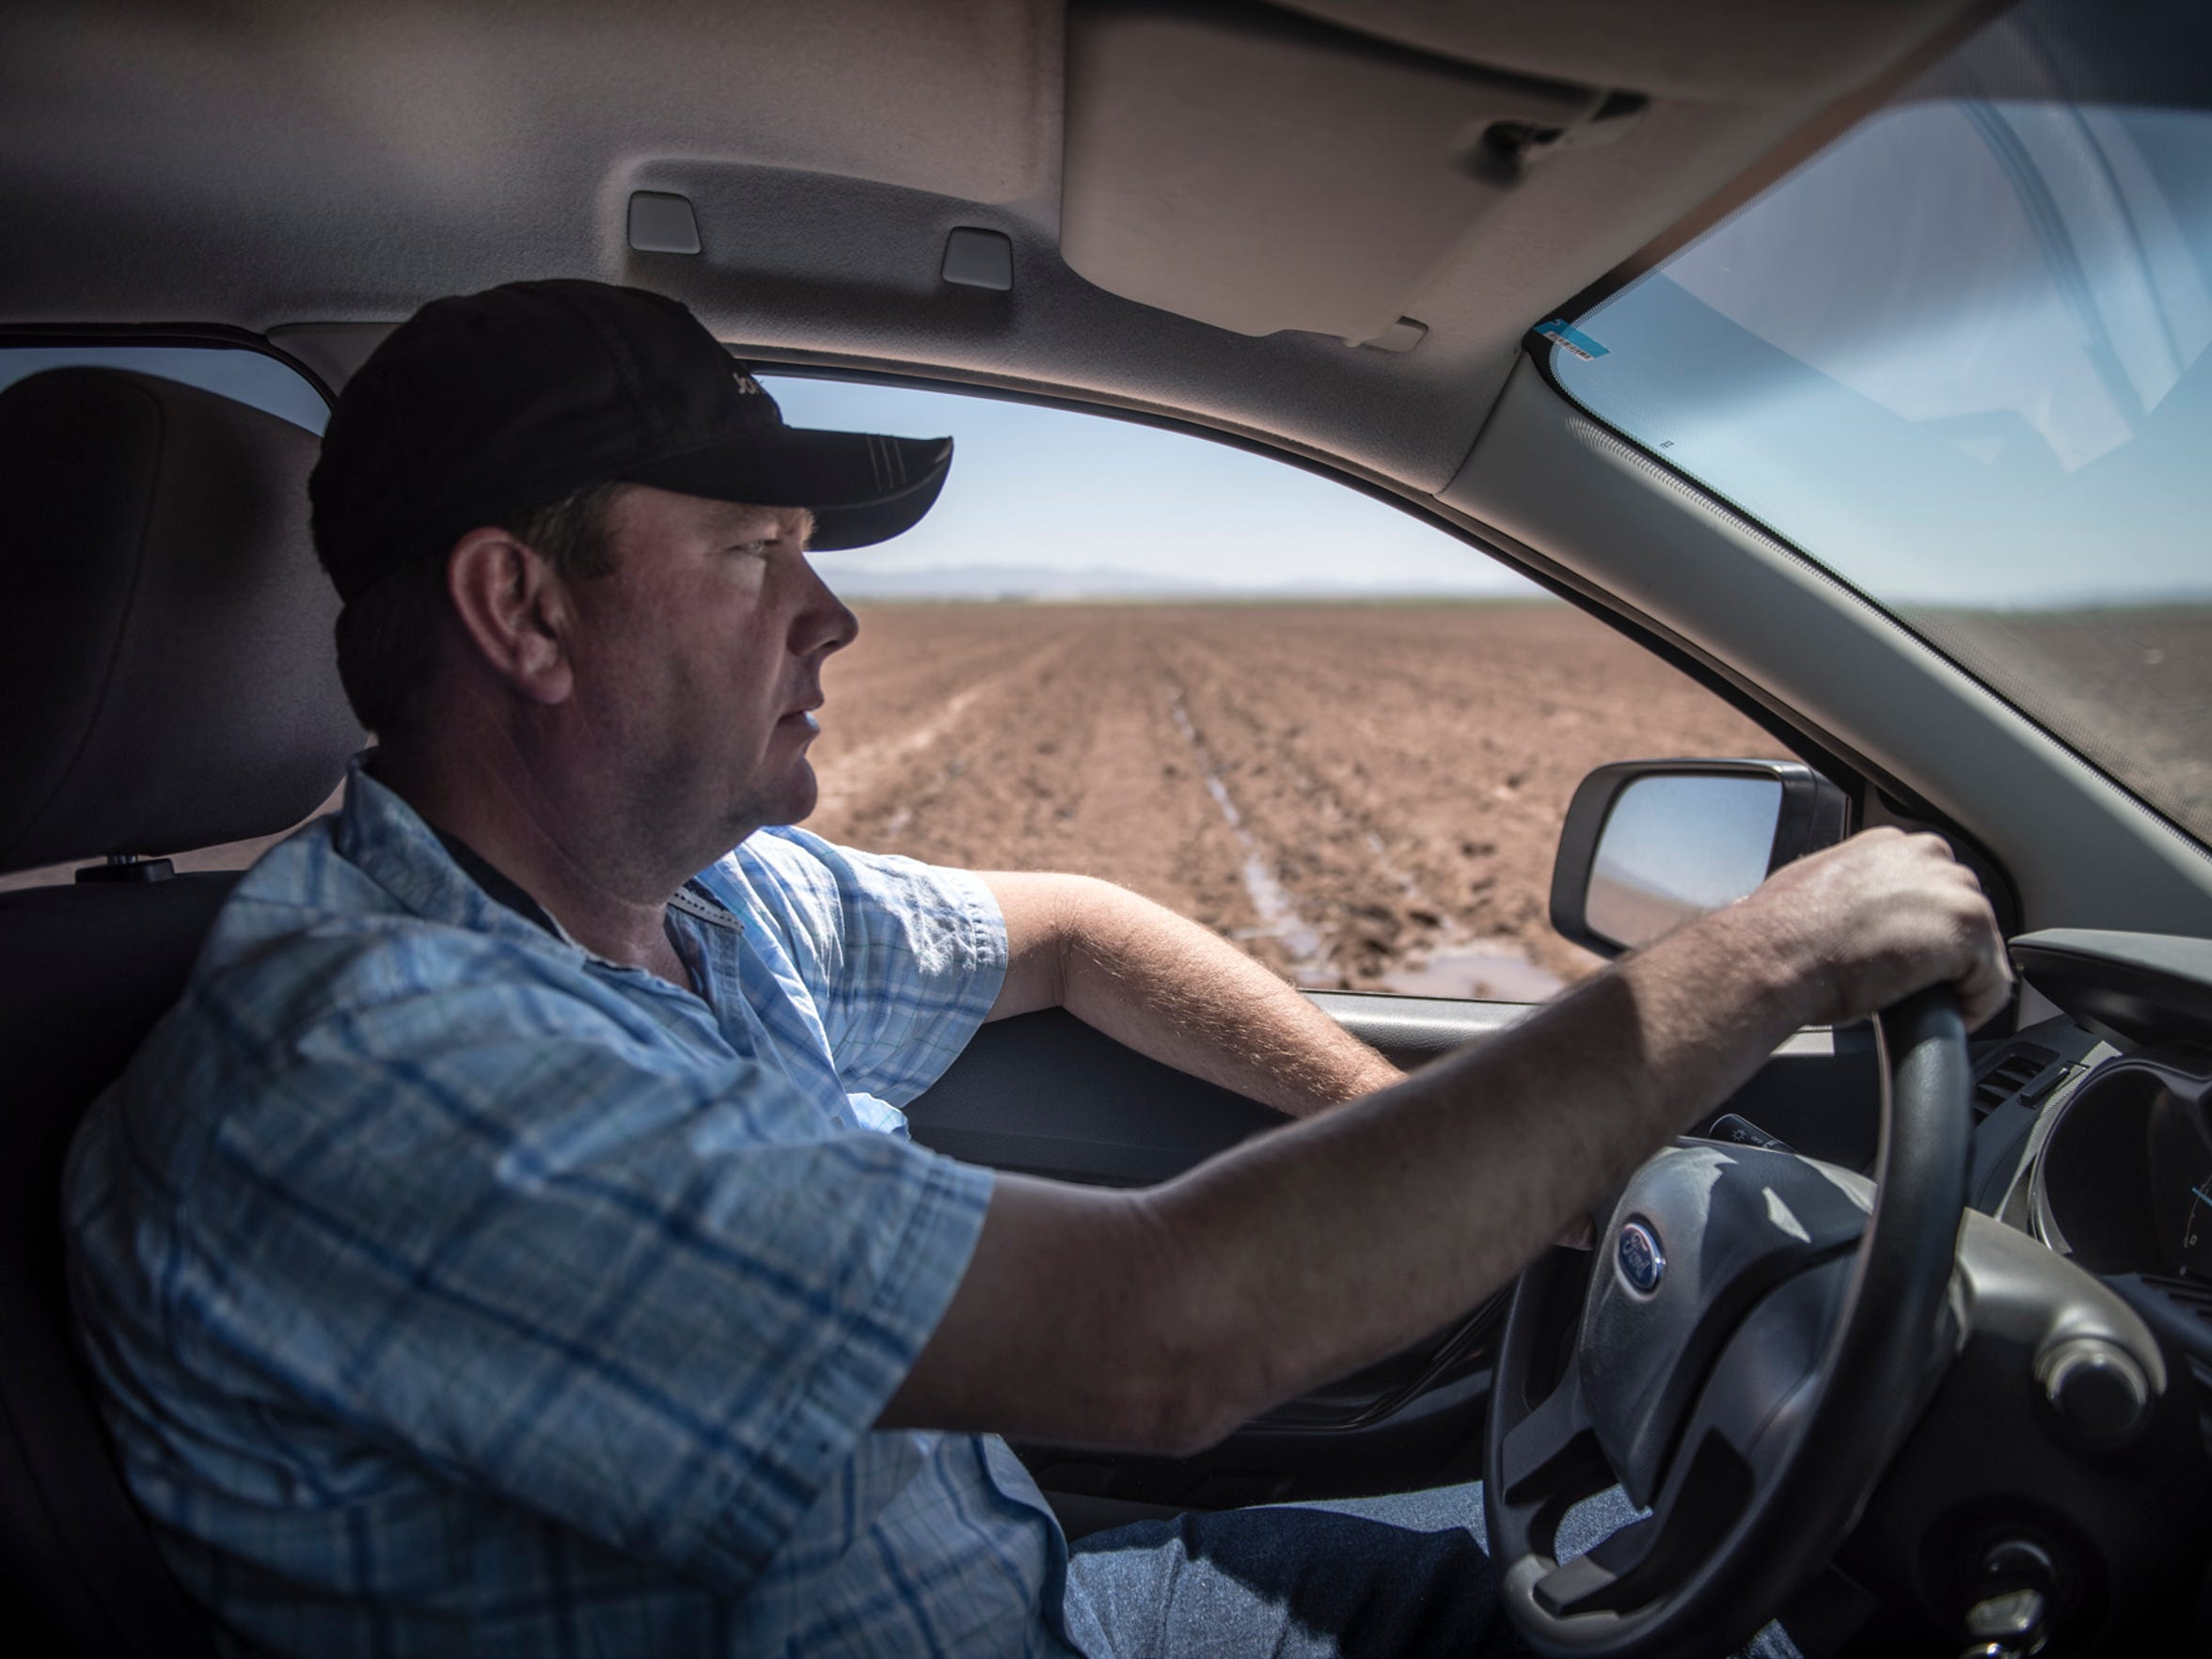 Mexican farmer Pedro Suderman drives his diesel truck June 13, 2017, to monitor the progress on a drip irrigation system he has installed in his chile, onion and watermelon fields in the northern Mexico Mennonite community of El Camello.